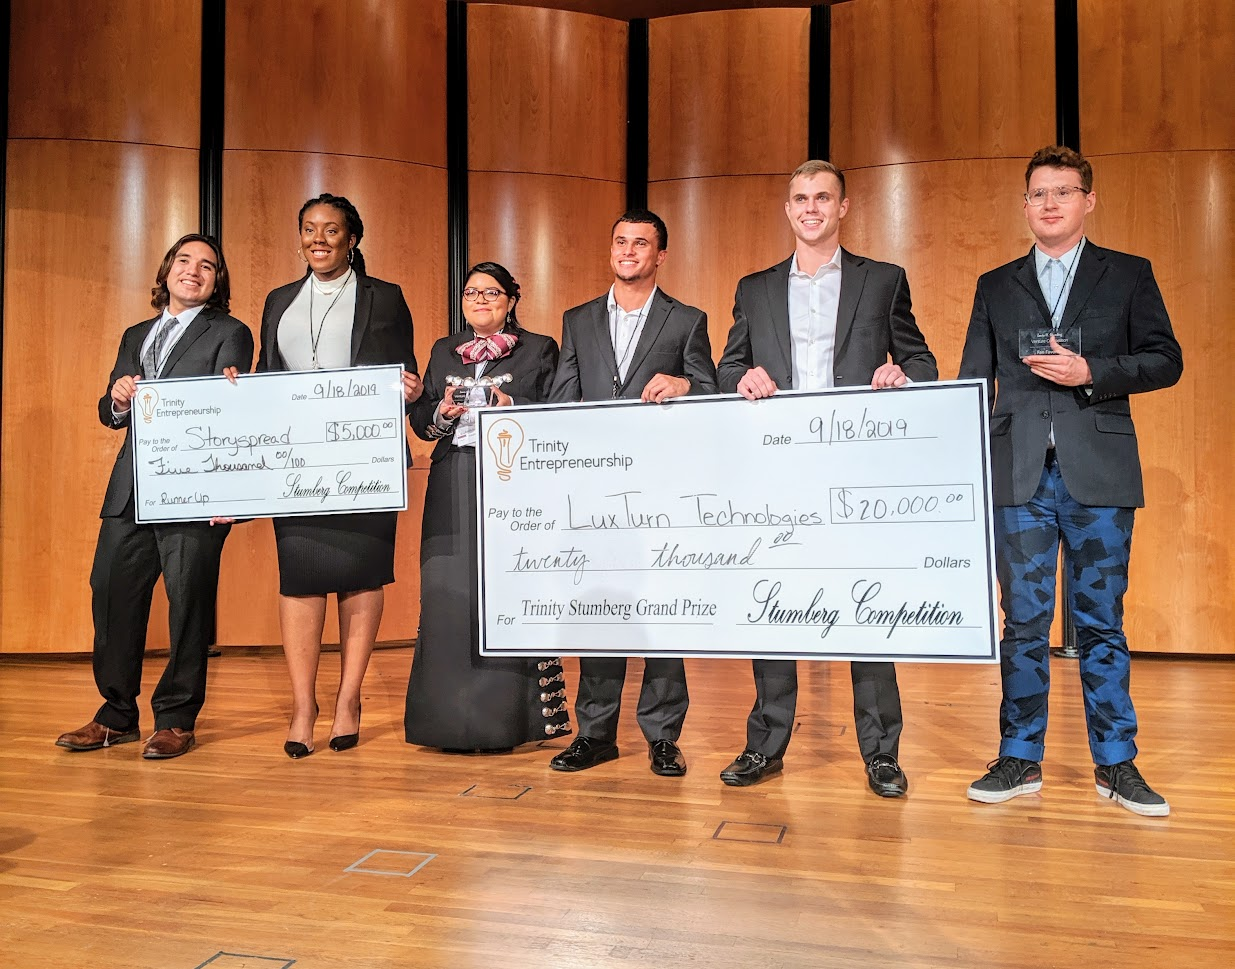 Cycling Safety Tech Startup Wins Trinity University's Stumberg Venture Competition